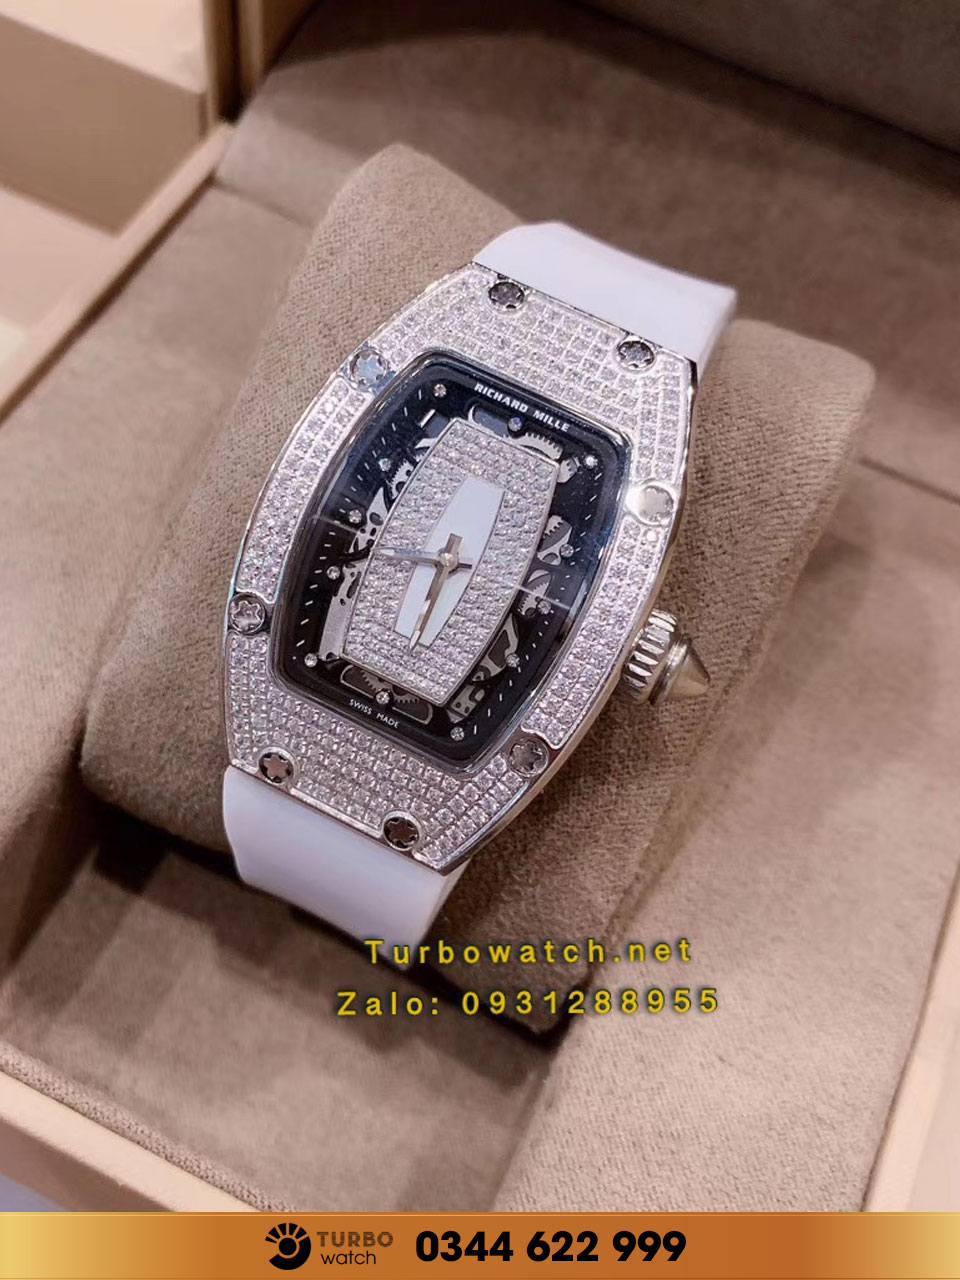 RICHARD MILLE replica 1:1